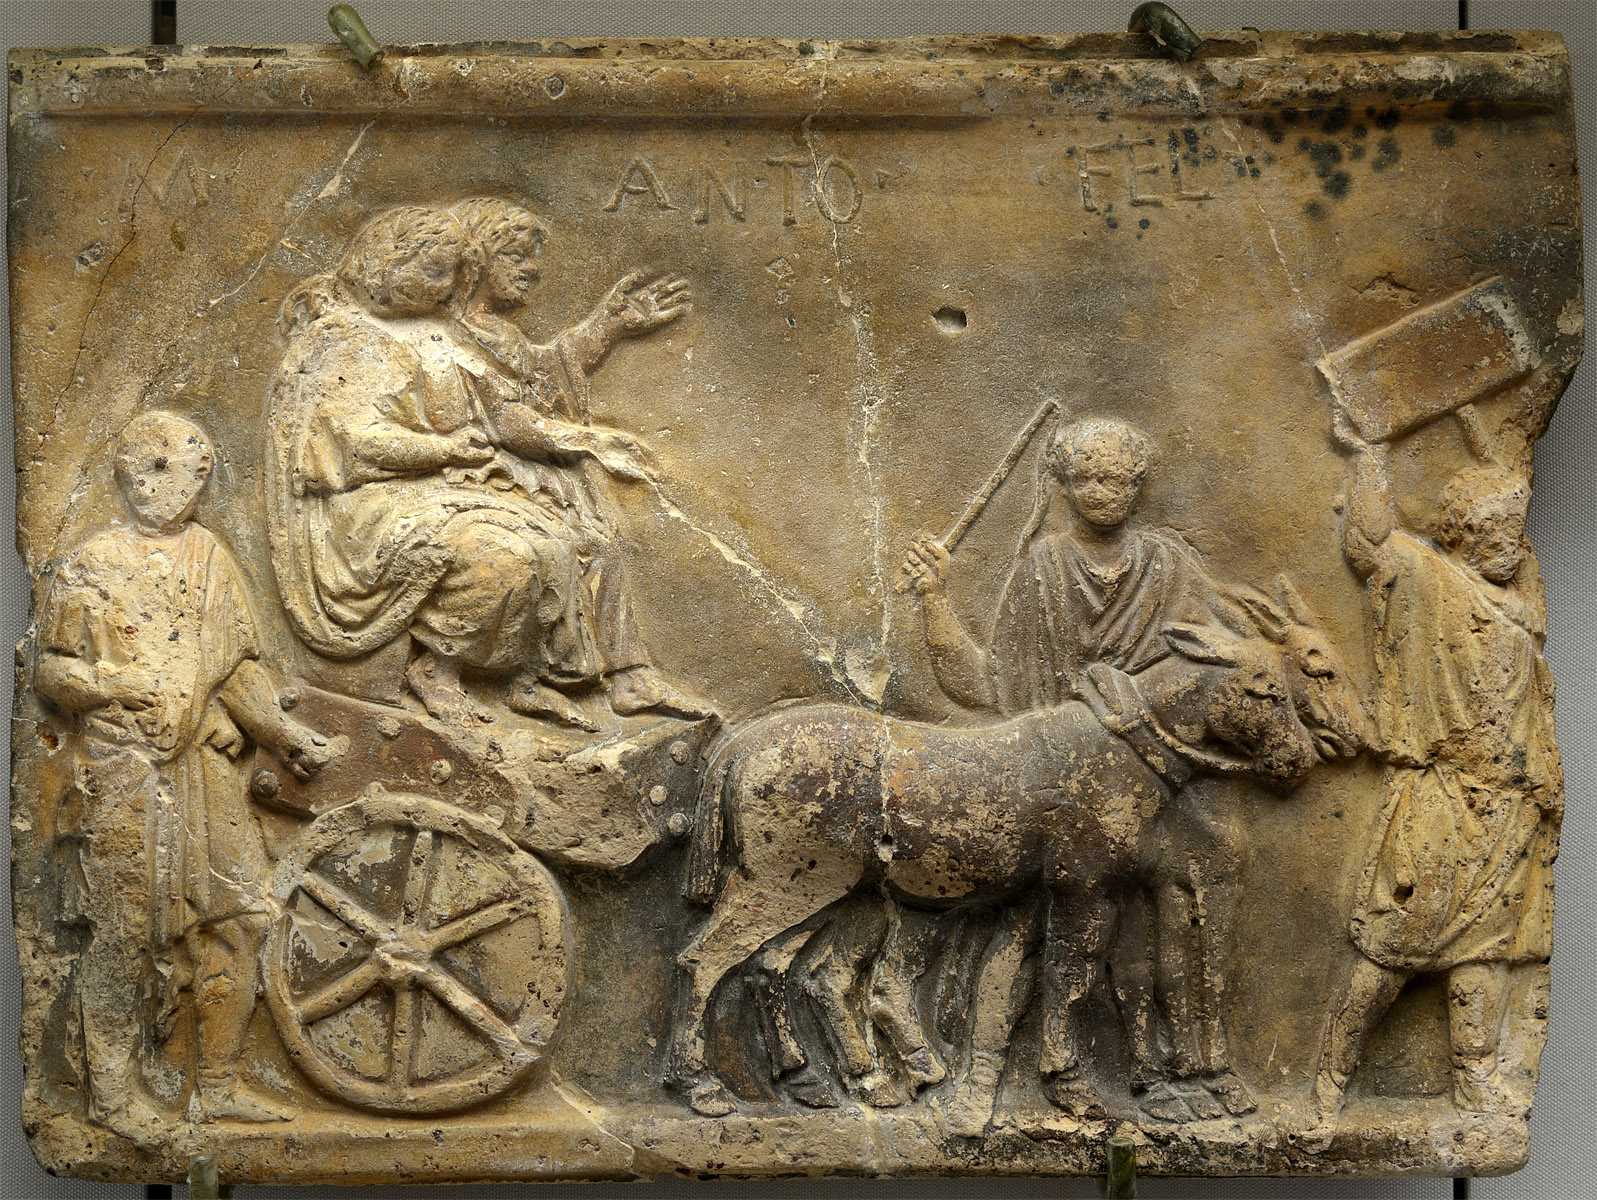 Campana plaque showing two grieving male prisoners being drawn on a cart in a triumphal procession. Terracotta, traces of paint. 1st cent BCE. Inv. No. AT 3712. Moscow, the Pushkin Museum of Fine Arts